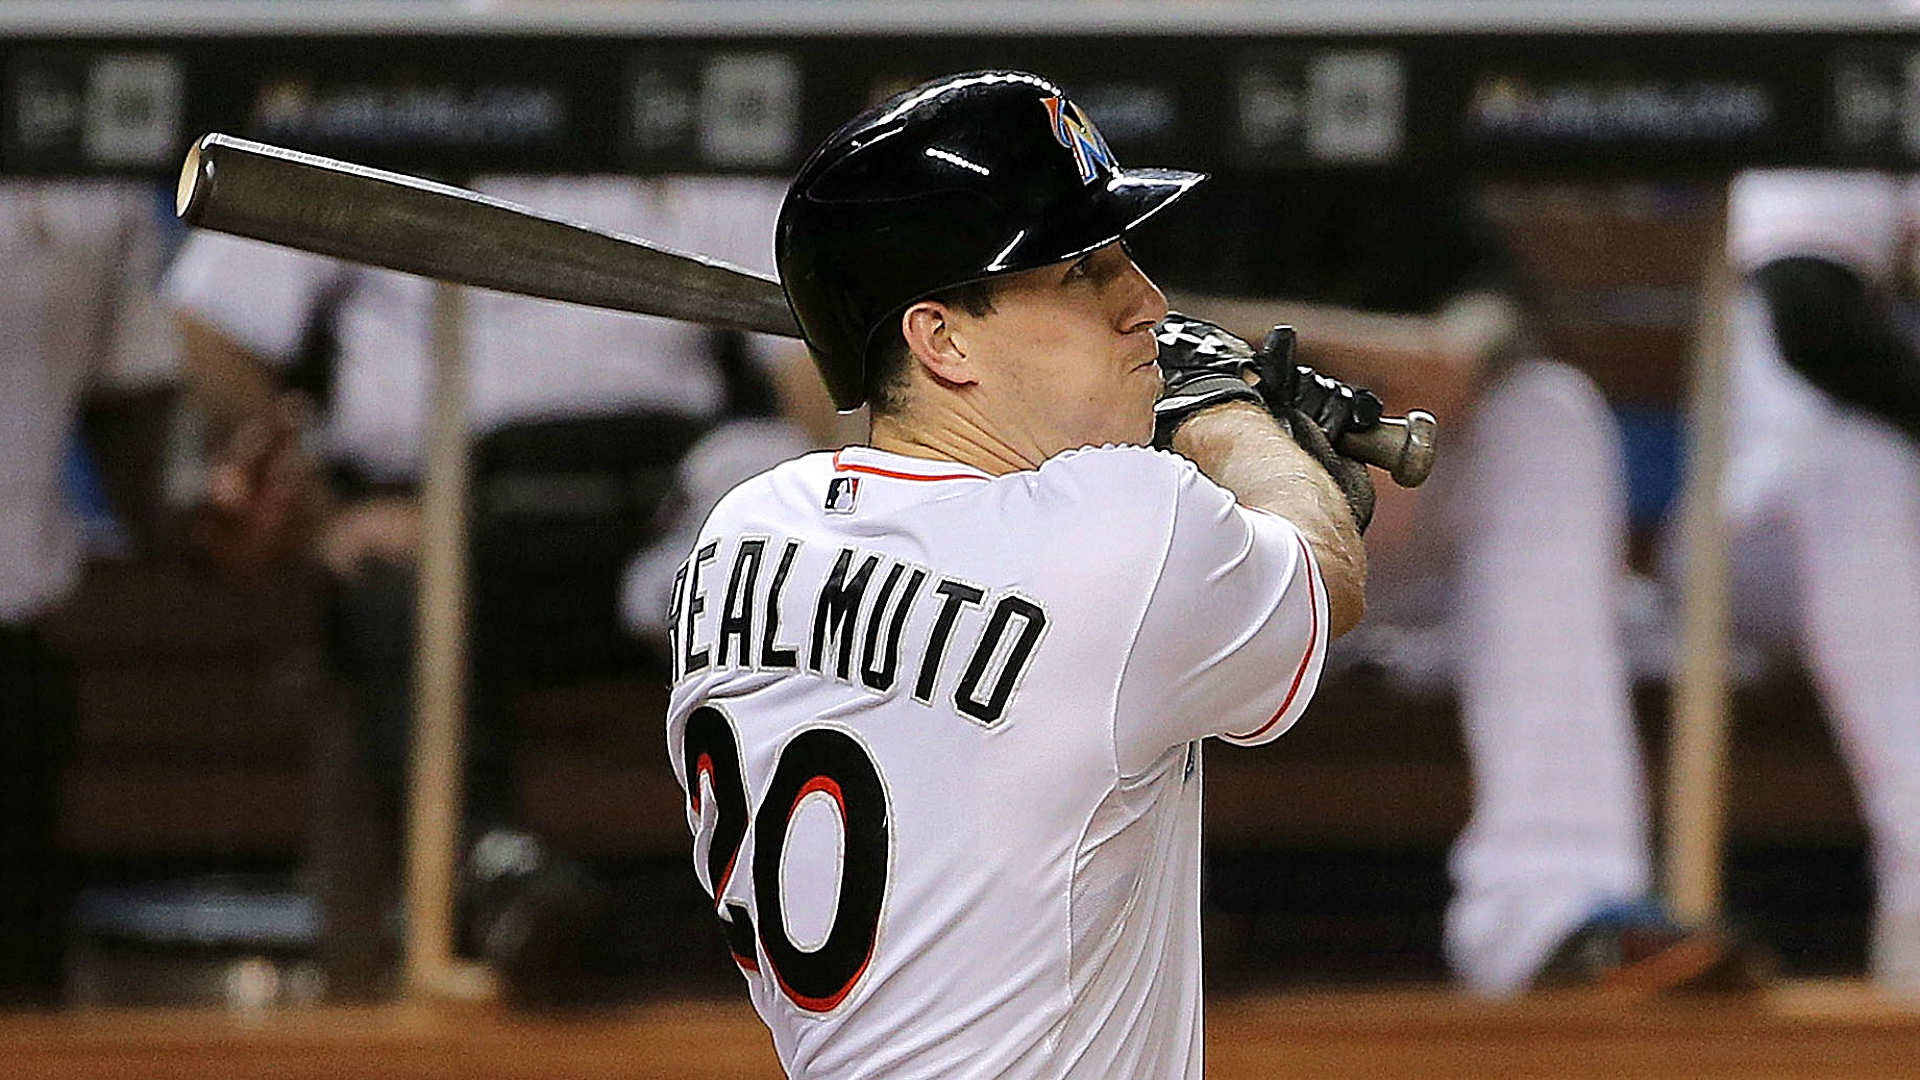 Phils making progress with Miami Realmuto reports say Sporting 1920x1080